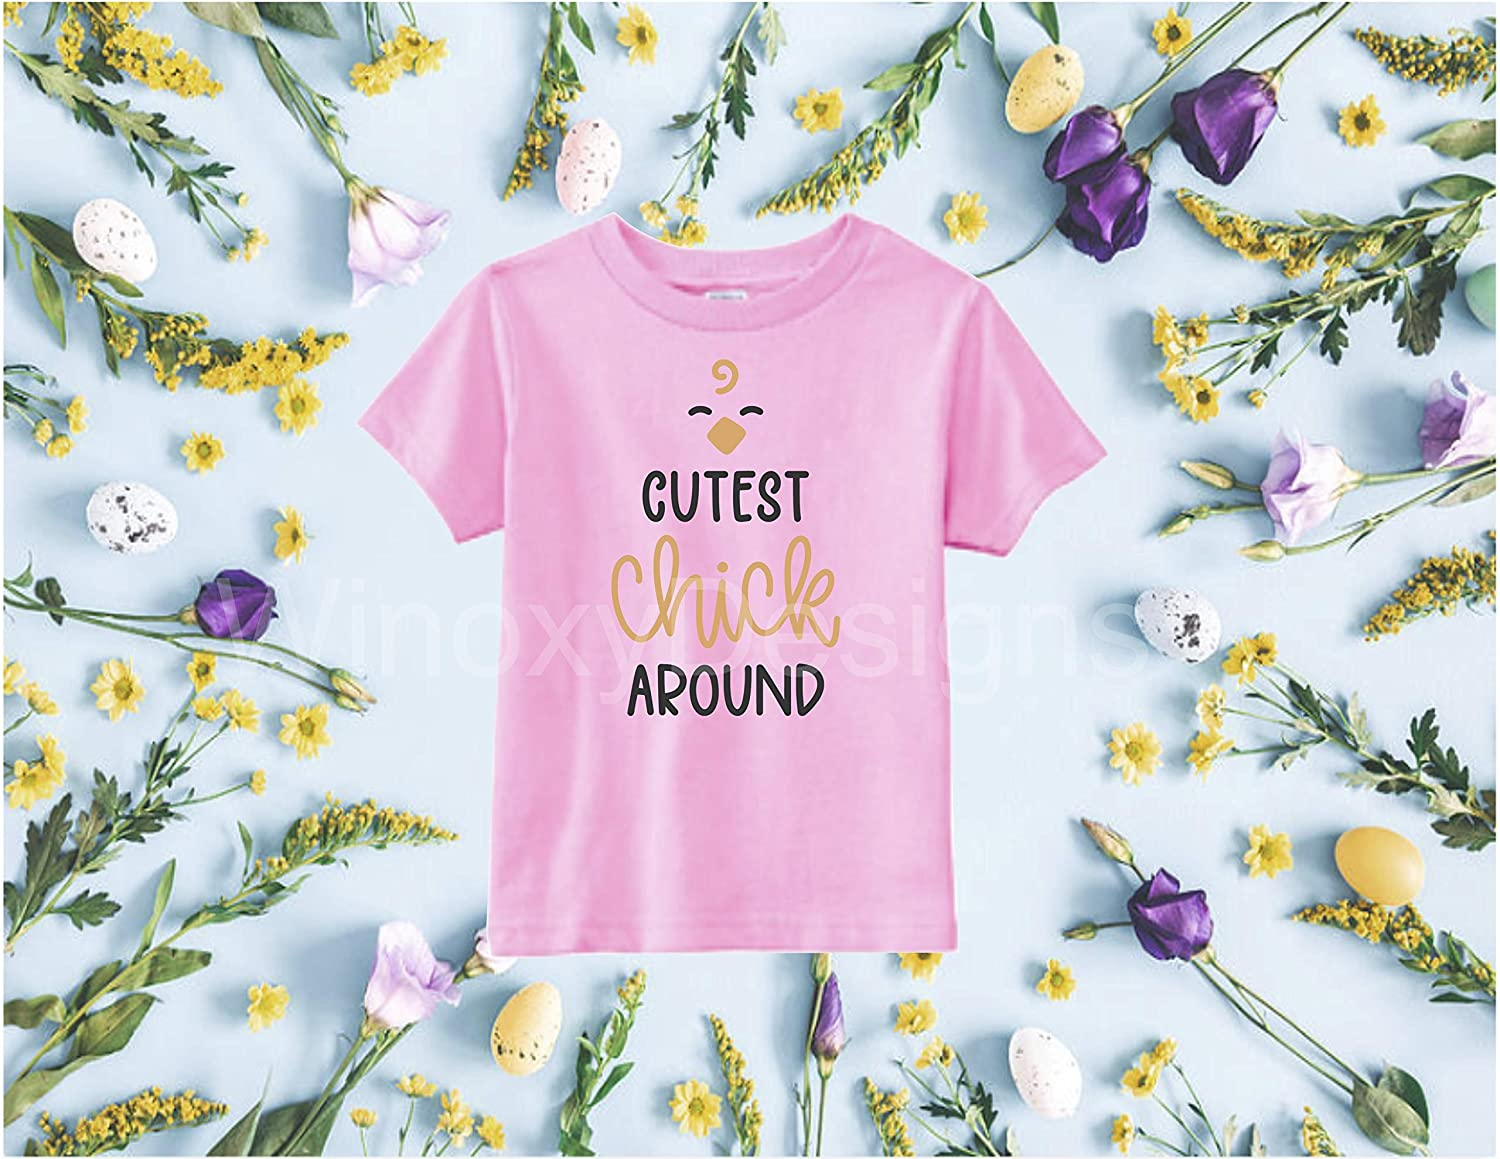 Easter Day Bodysuit Toddler Tshirt Cutest Chick Around Funny Shirt Boys Girls Shirt Easter Funny Toddler Graphic Tee